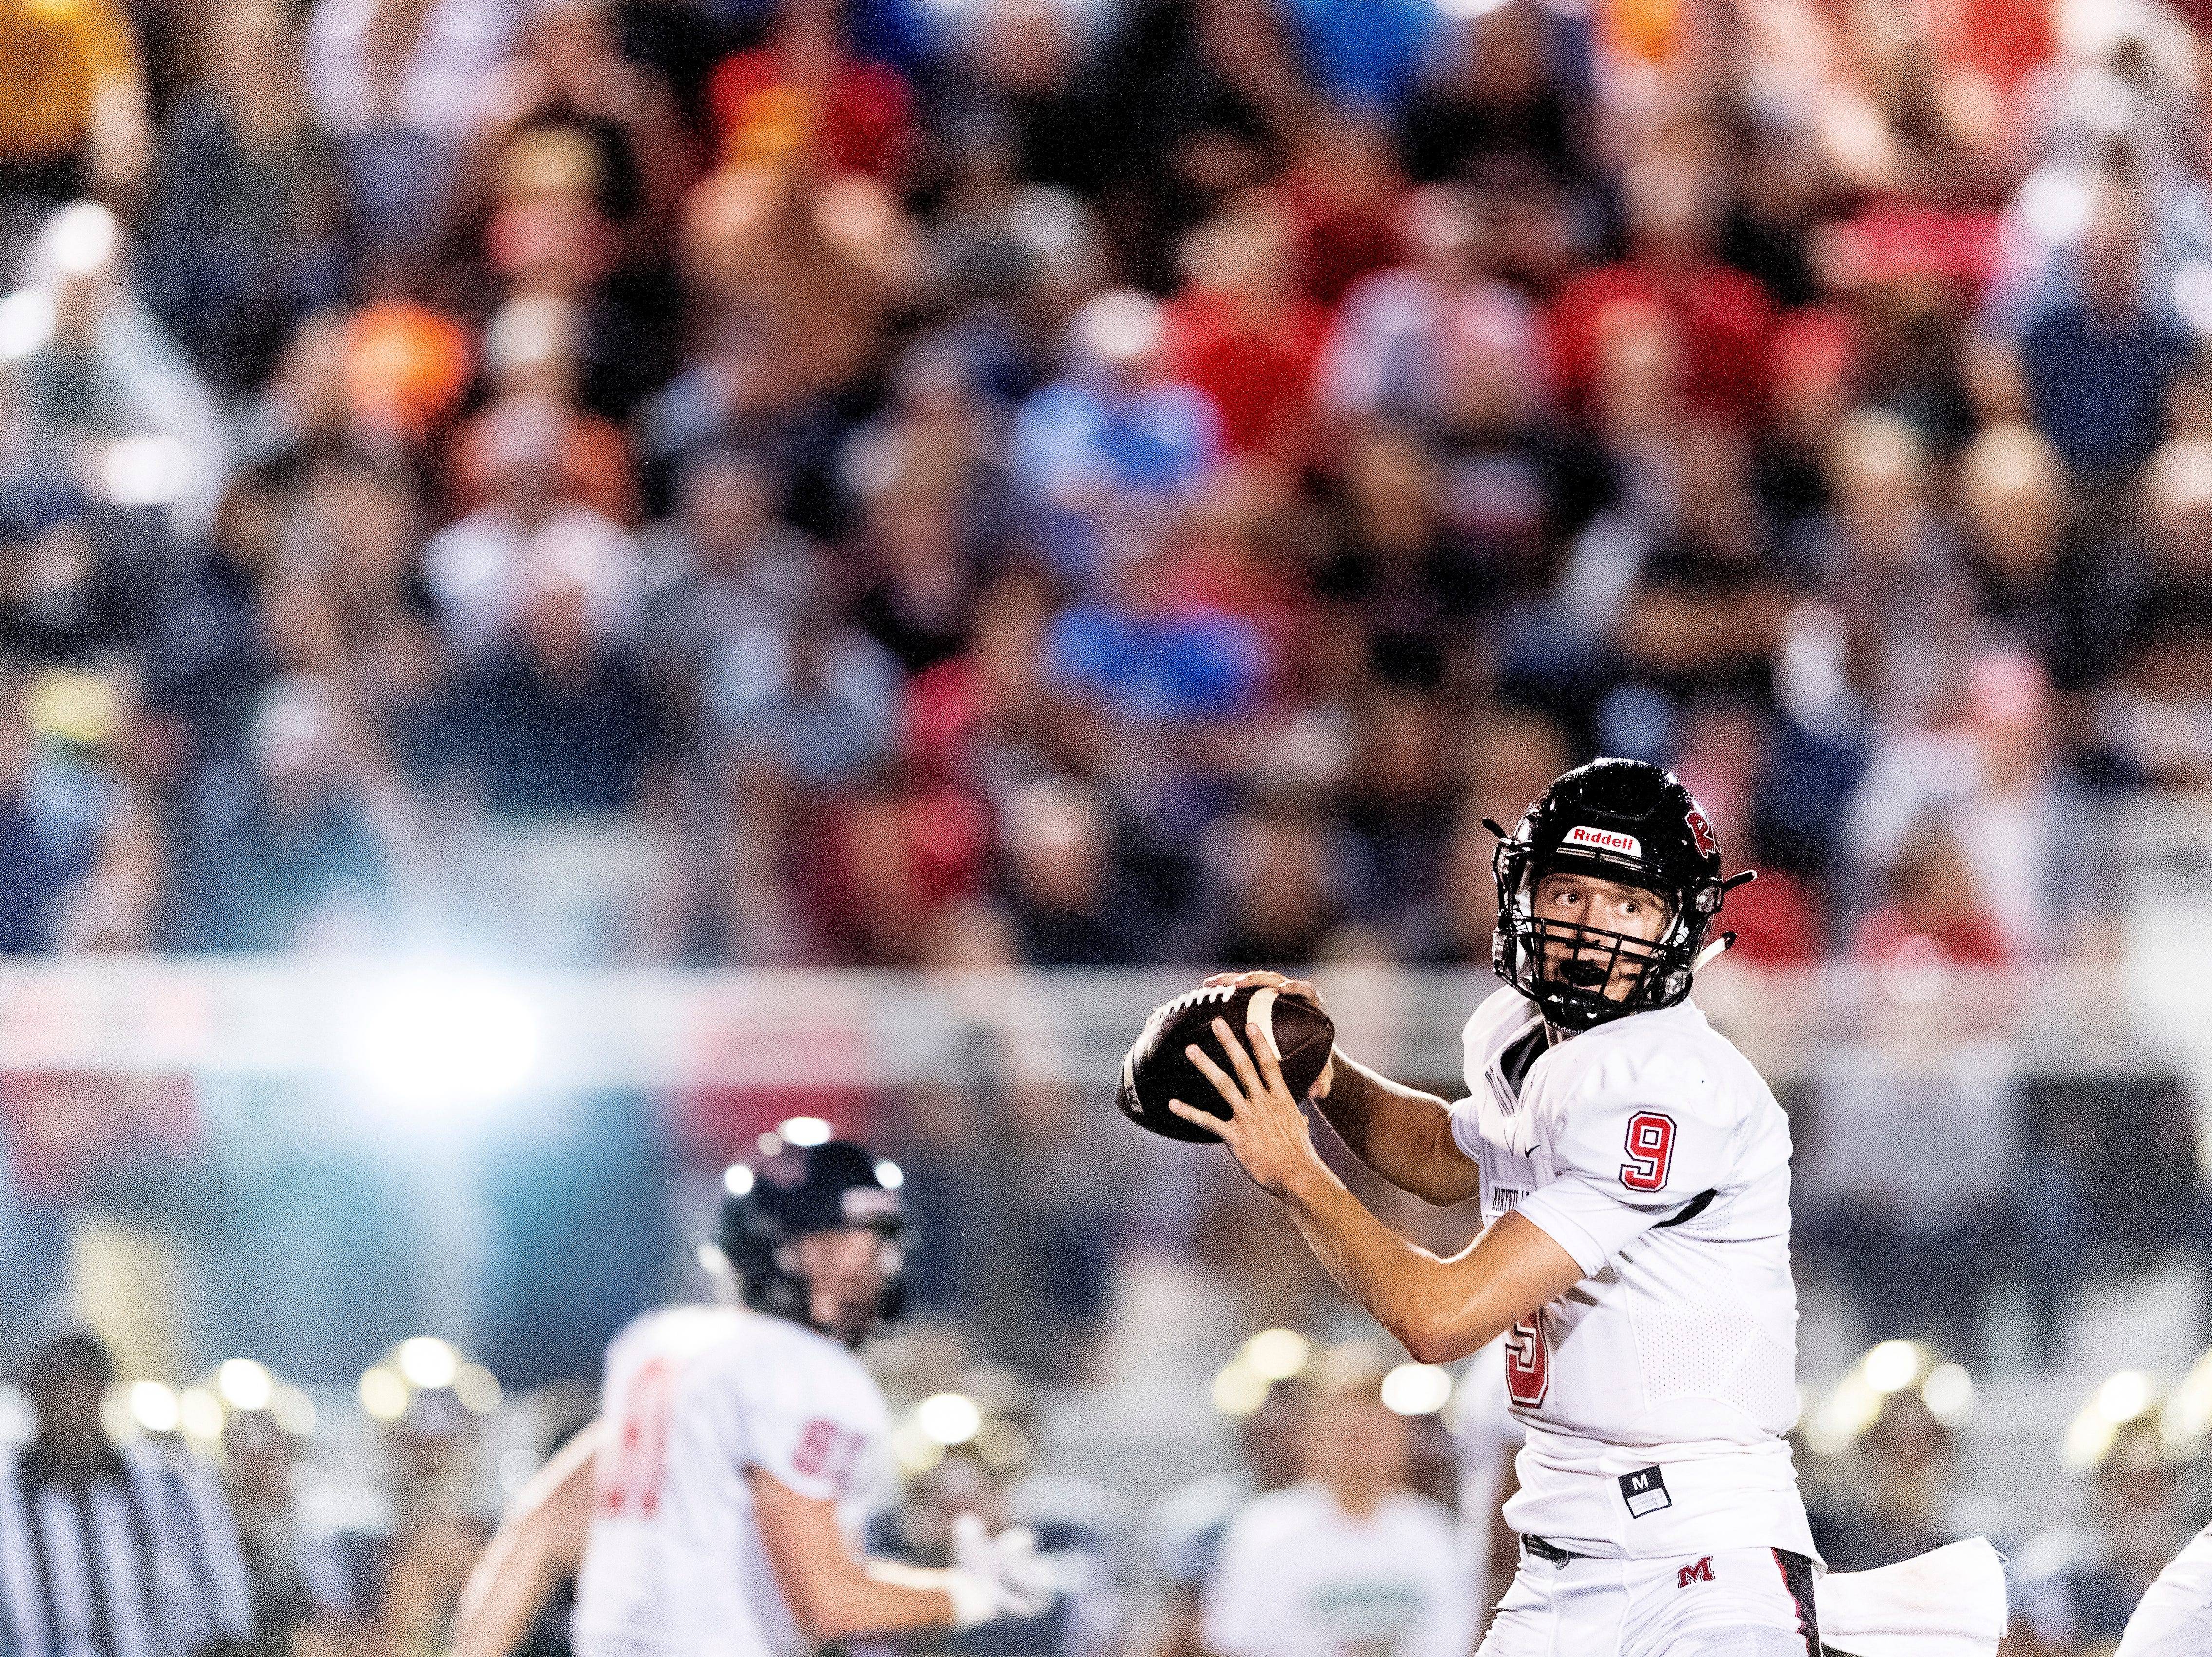 Maryville's Cade Chambers (9) lines up a pass during a football game between Maryville and Catholic at Catholic High School in Knoxville, Tennessee on Friday, August 17, 2018.